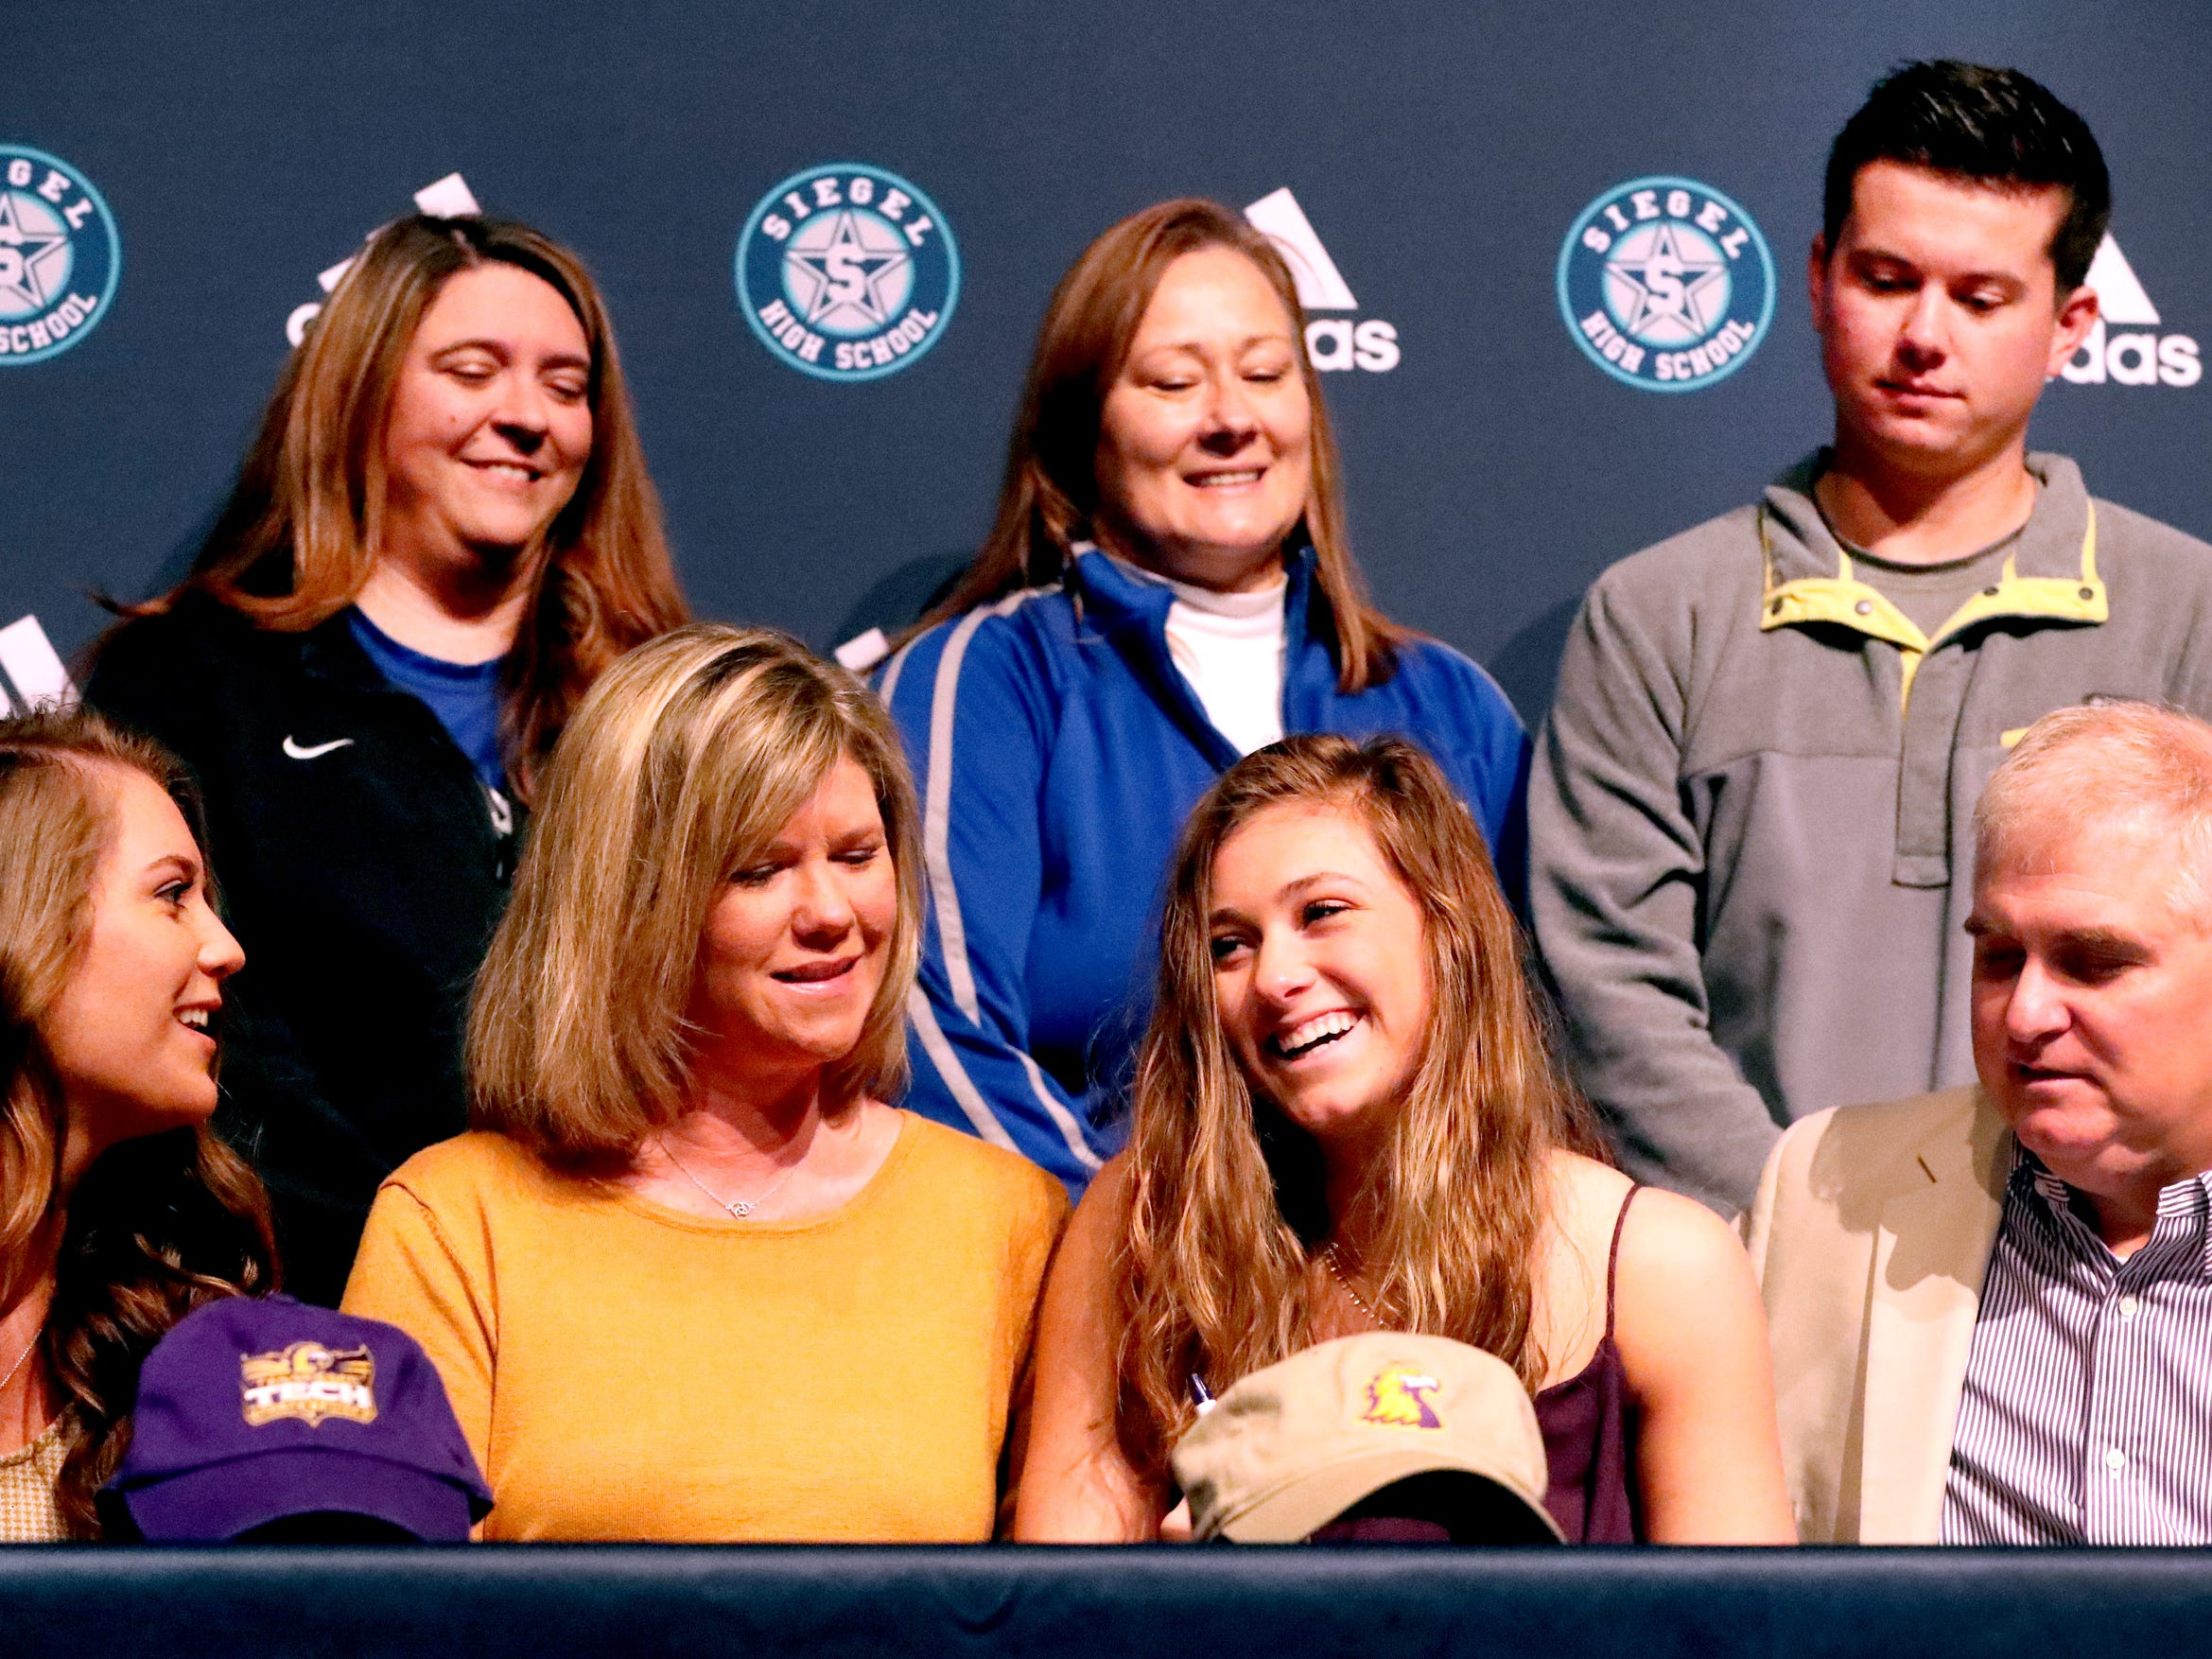 Siegel volleyball player, Julia Wheeler, signed a national letter of intent to play college volleyball at Tennessee Tech, on Wednesday, Nov. 14, 2018.